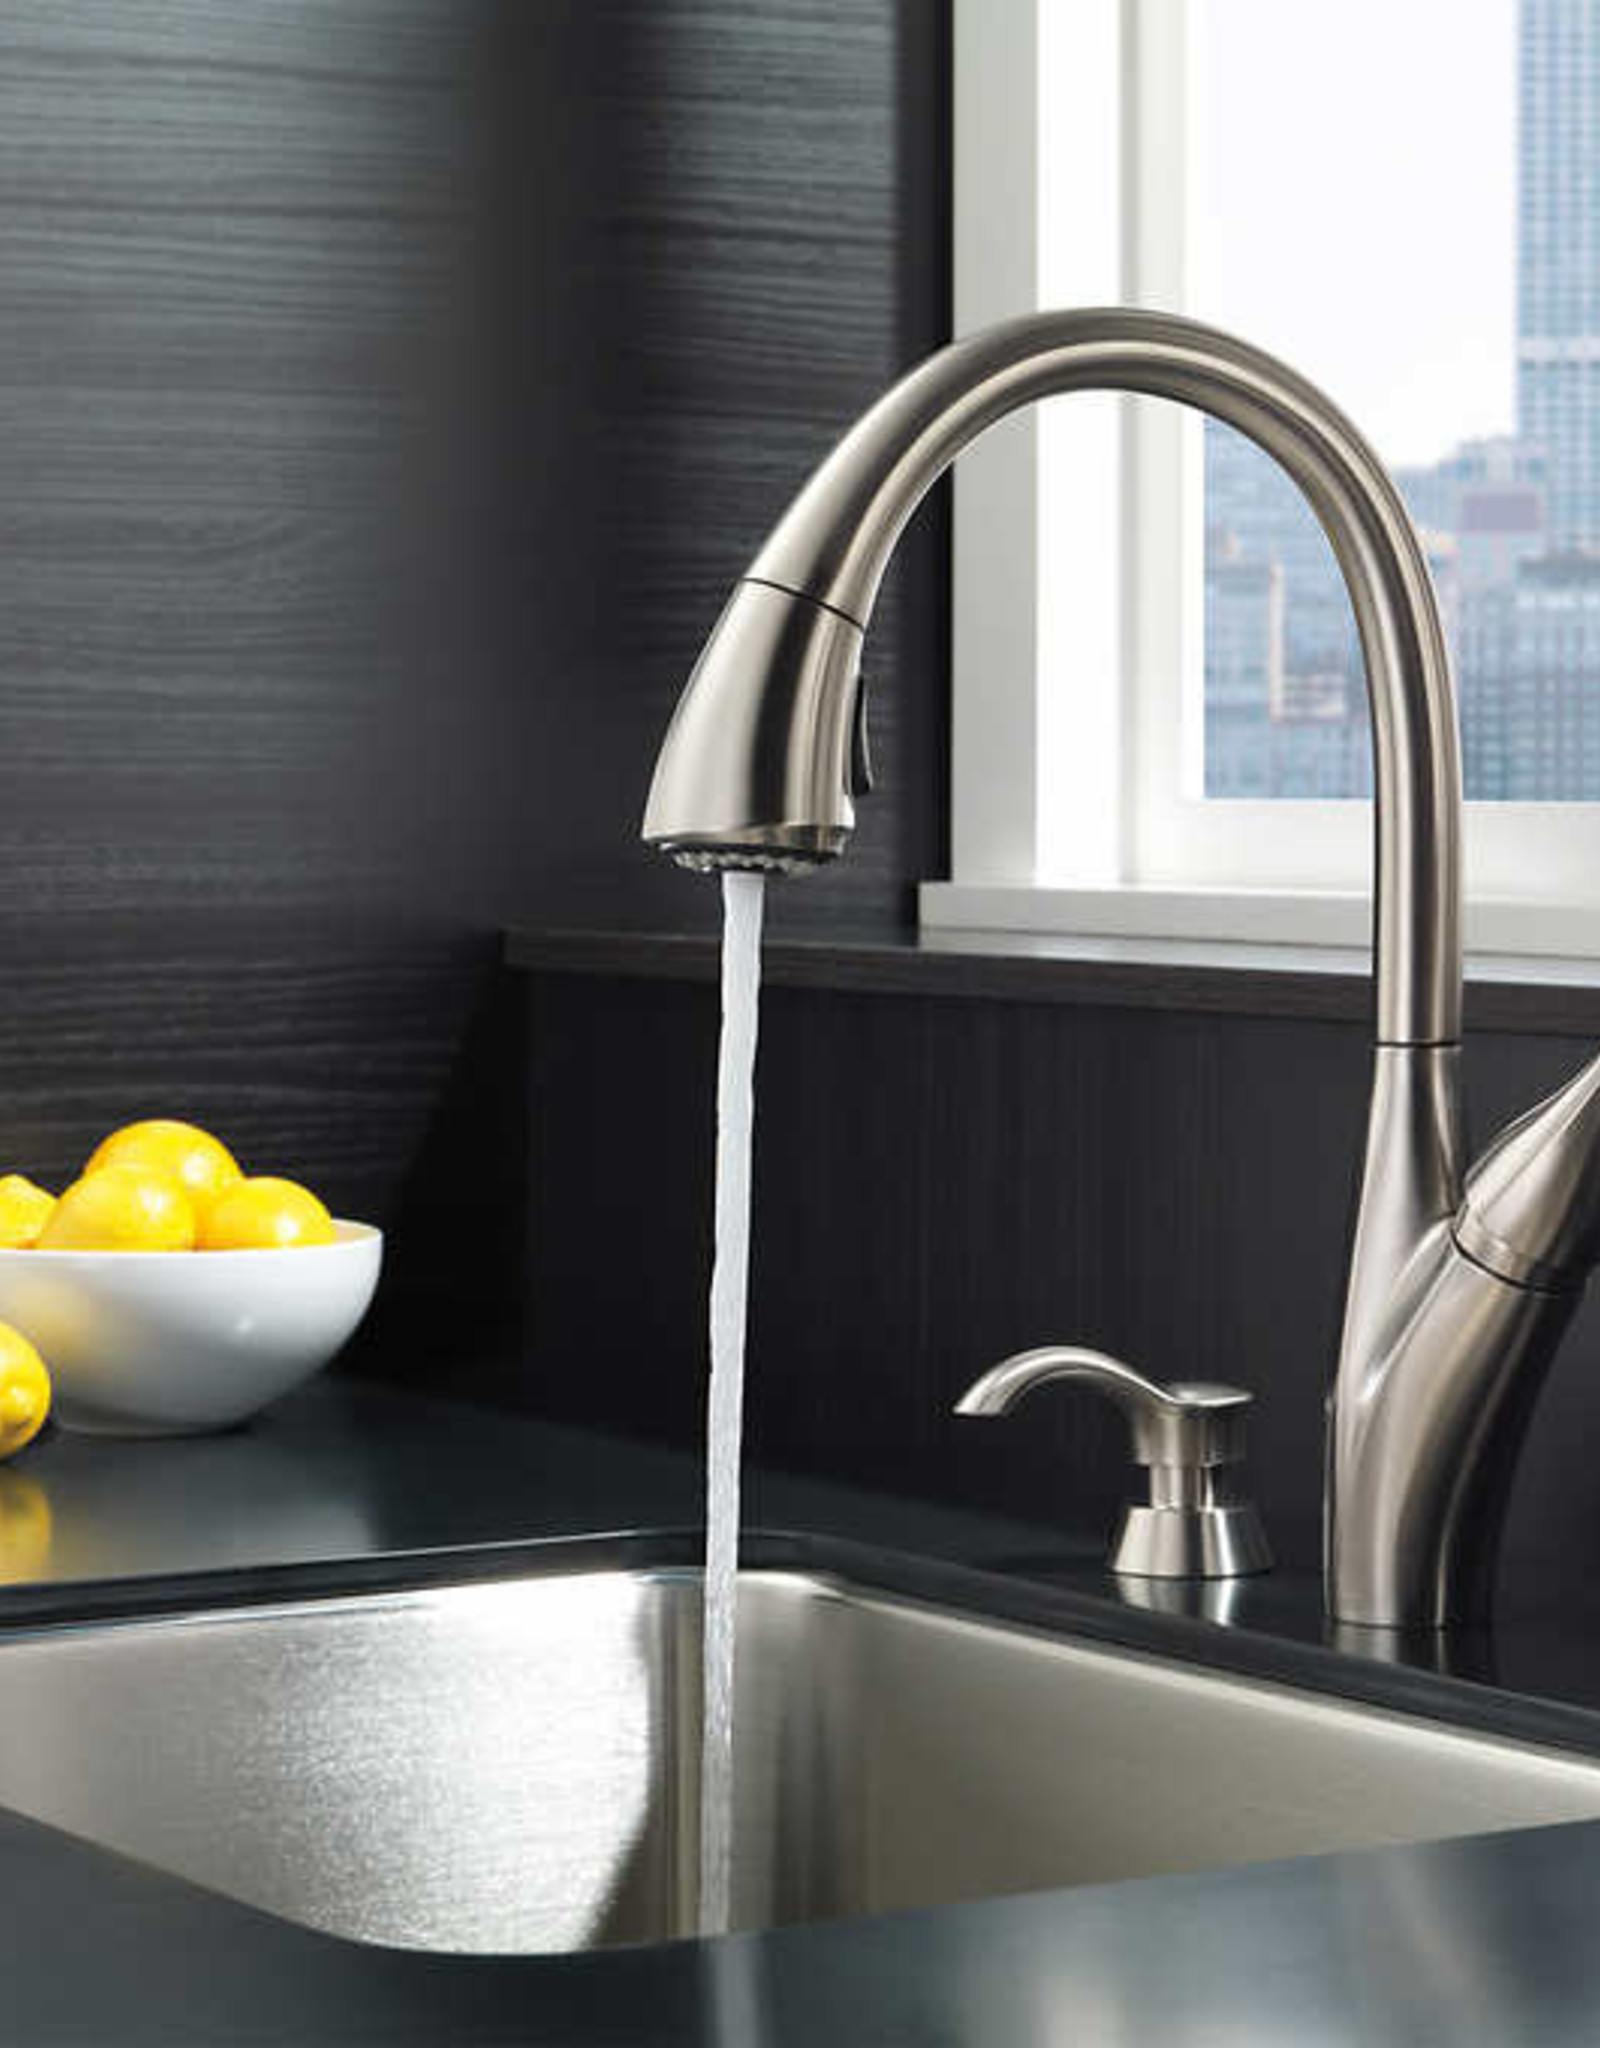 DELTA FAUCET COMPANY Delta Berkley Pulldown Kitchen Faucet and Soap Dispenser